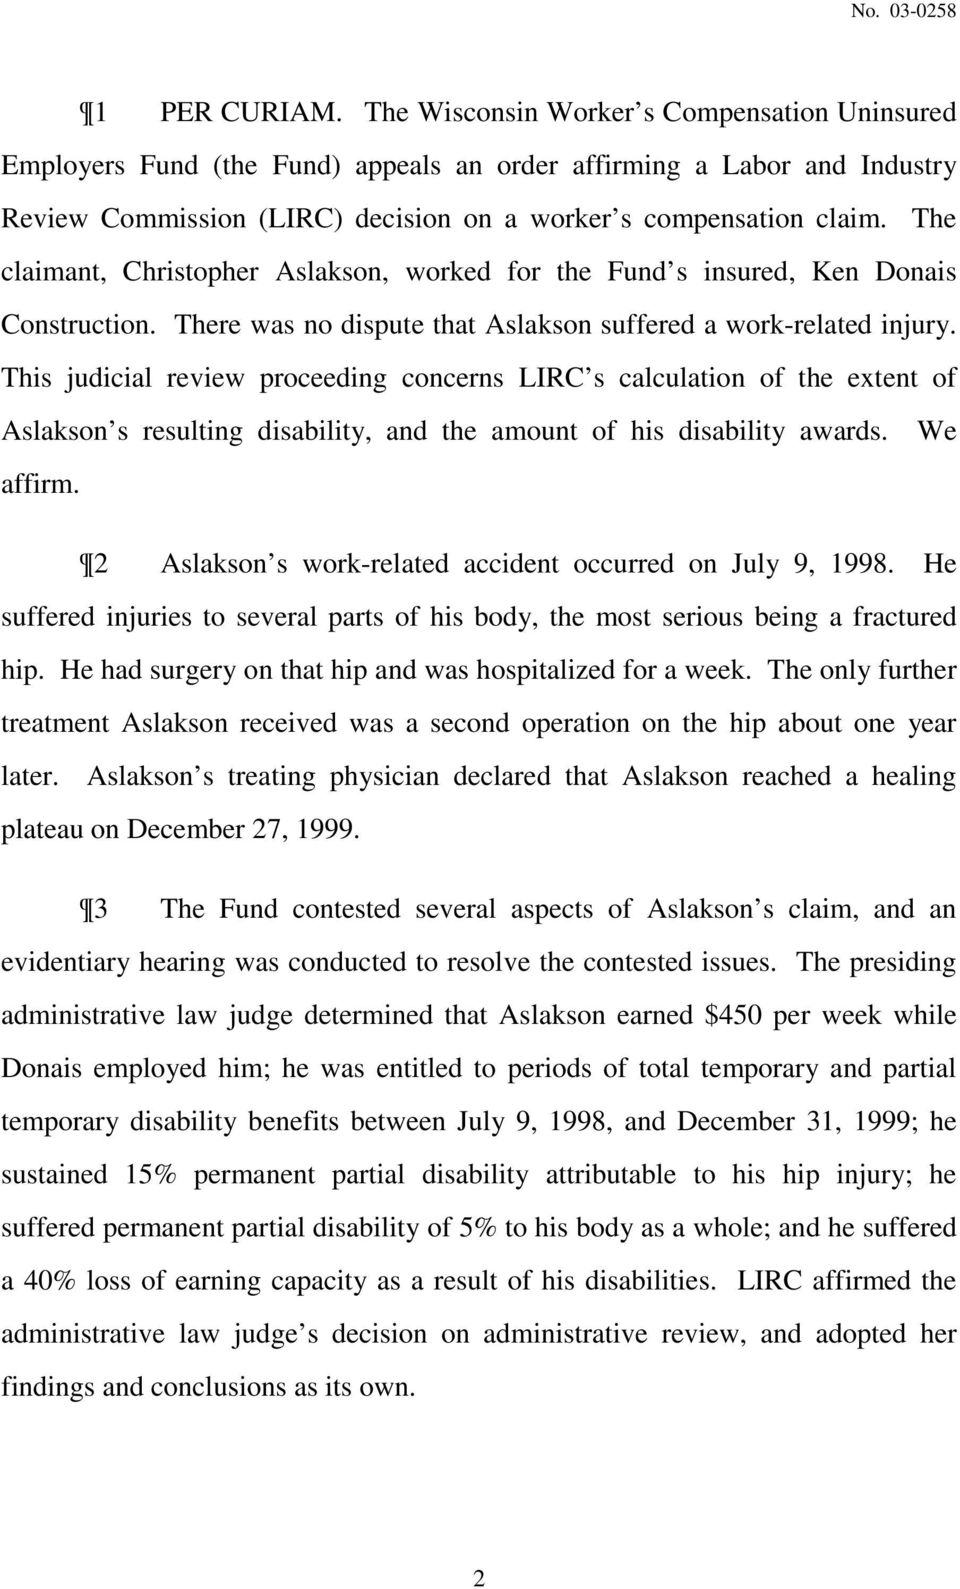 The claimant, Christopher Aslakson, worked for the Fund s insured, Ken Donais Construction. There was no dispute that Aslakson suffered a work-related injury.